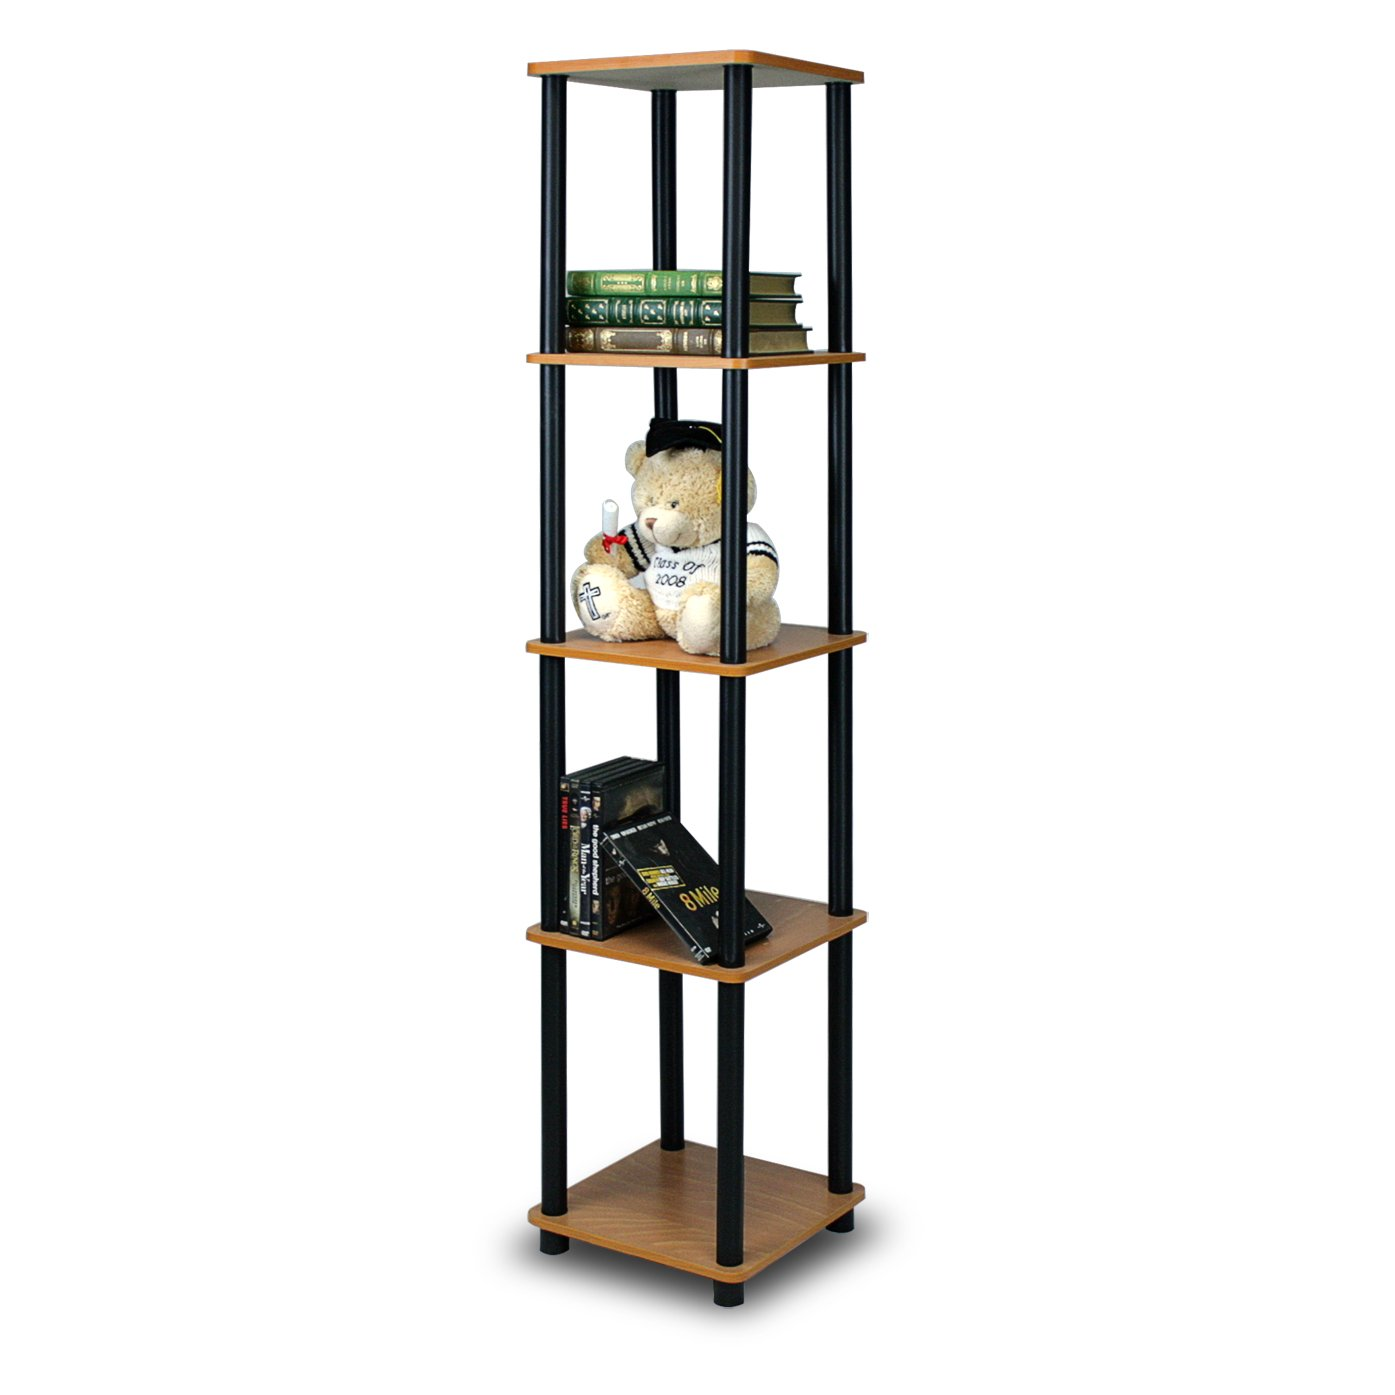 Amazon Furinno 99132LC BK Turn N Tube 5 Tier Corner Square Rack Display Shelf Light Cherry Black Kitchen Dining